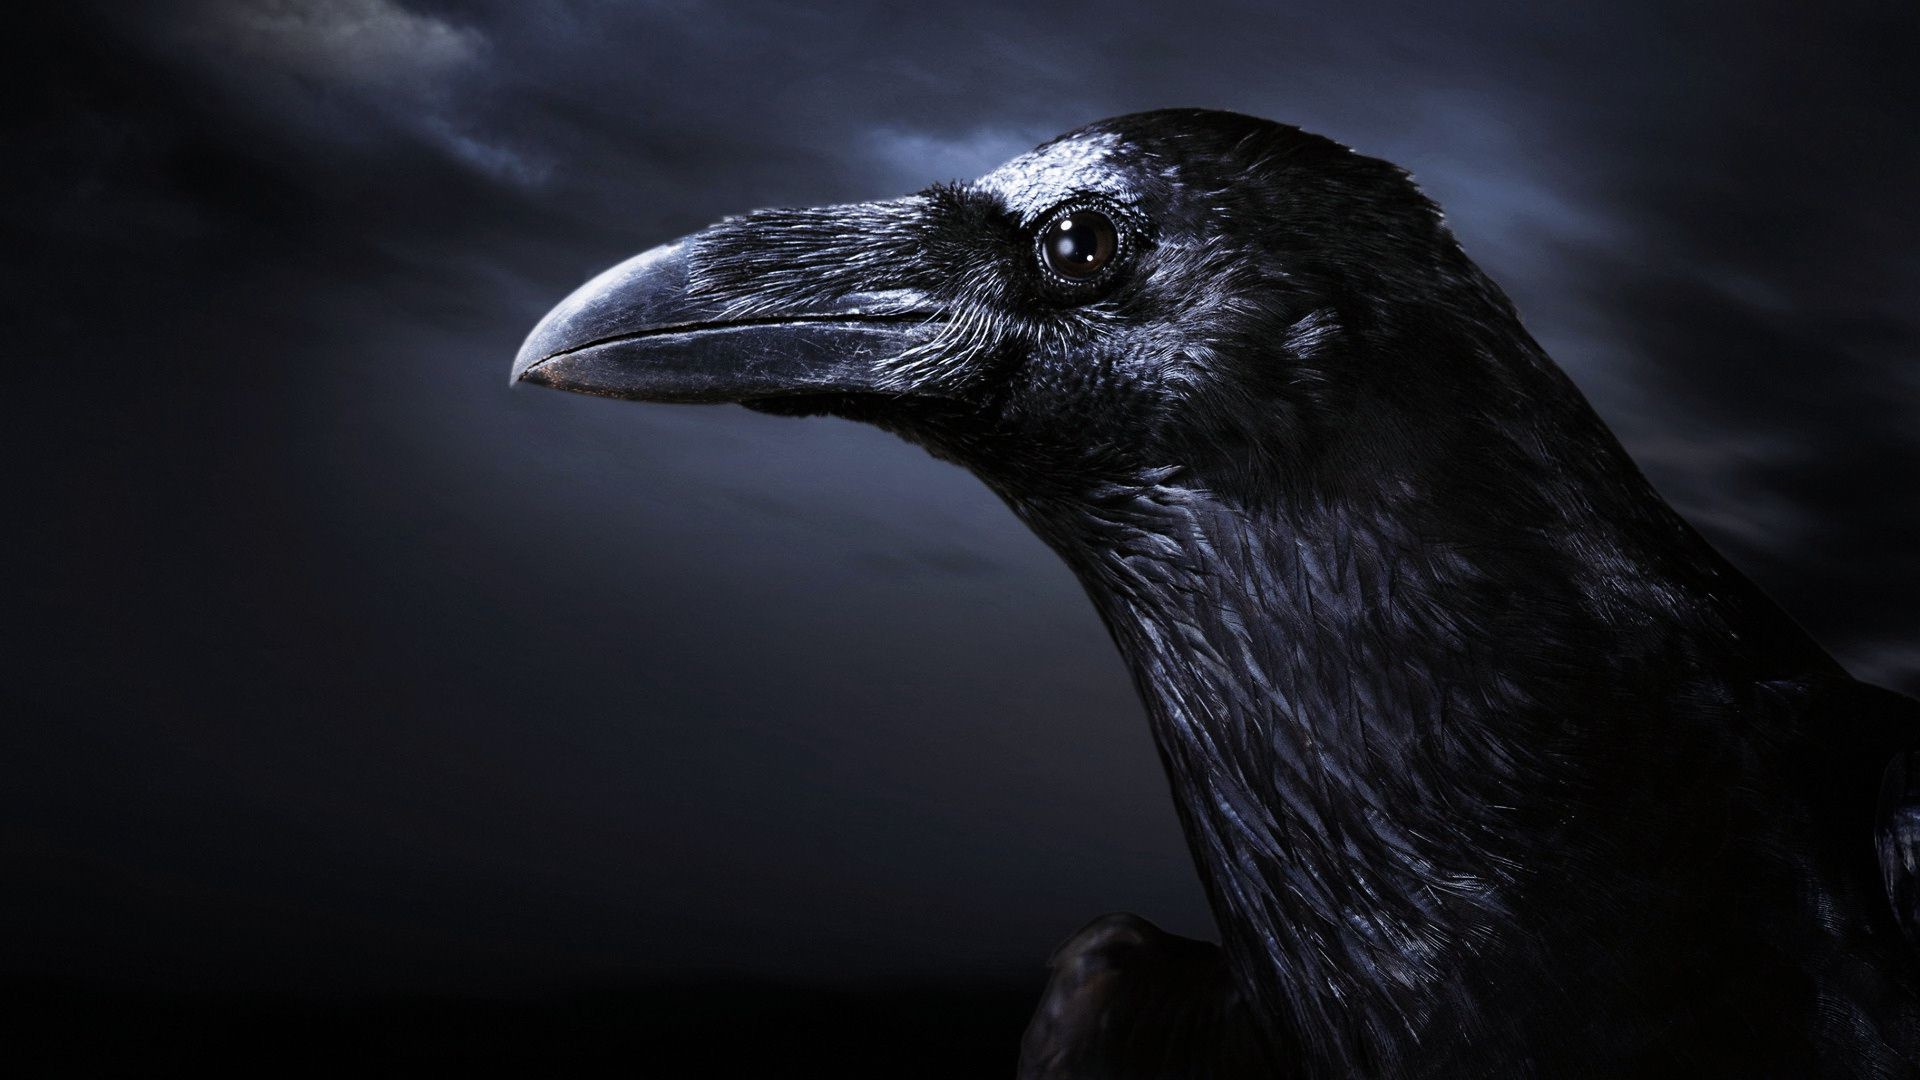 Crow Wallpapers And Backgrounds Crow With Dark Background 1920x1080 Download Hd Wallpaper Wallpapertip